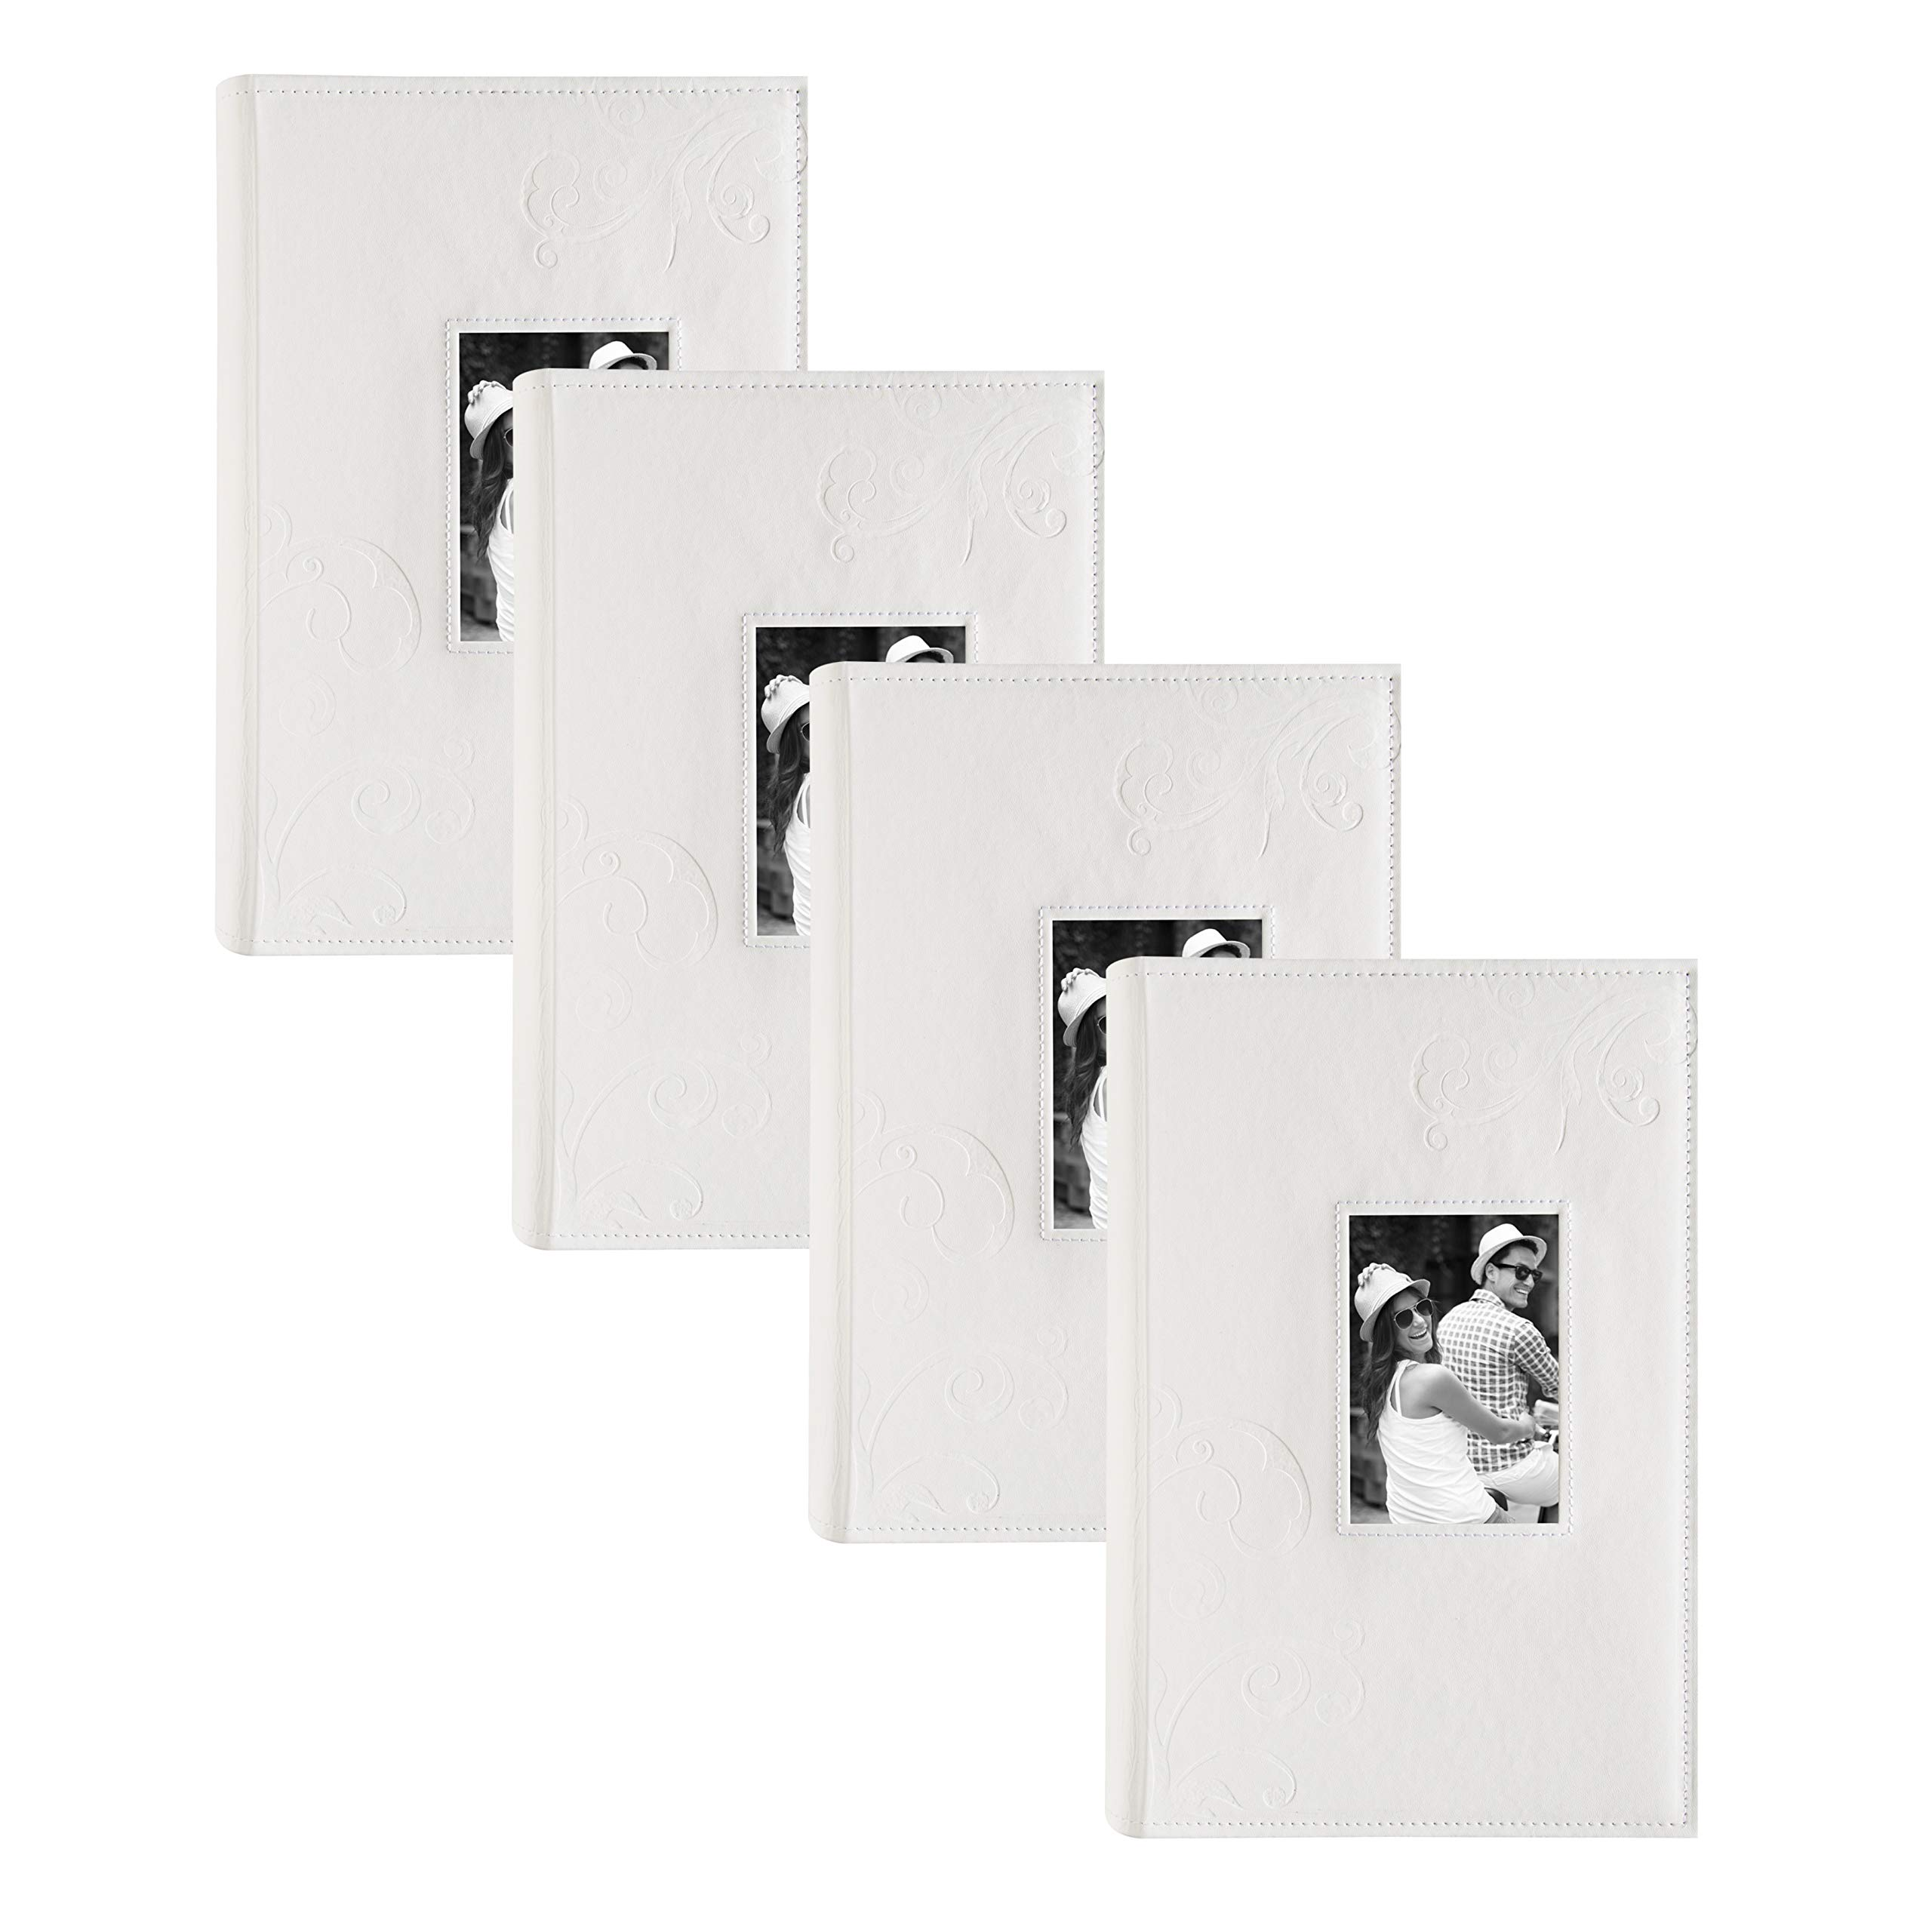 DesignOvation Embossed Flourish Faux Leather Photo Albums, Holds 300 4x6 Photos, Set of 4, Ivory White by DesignOvation